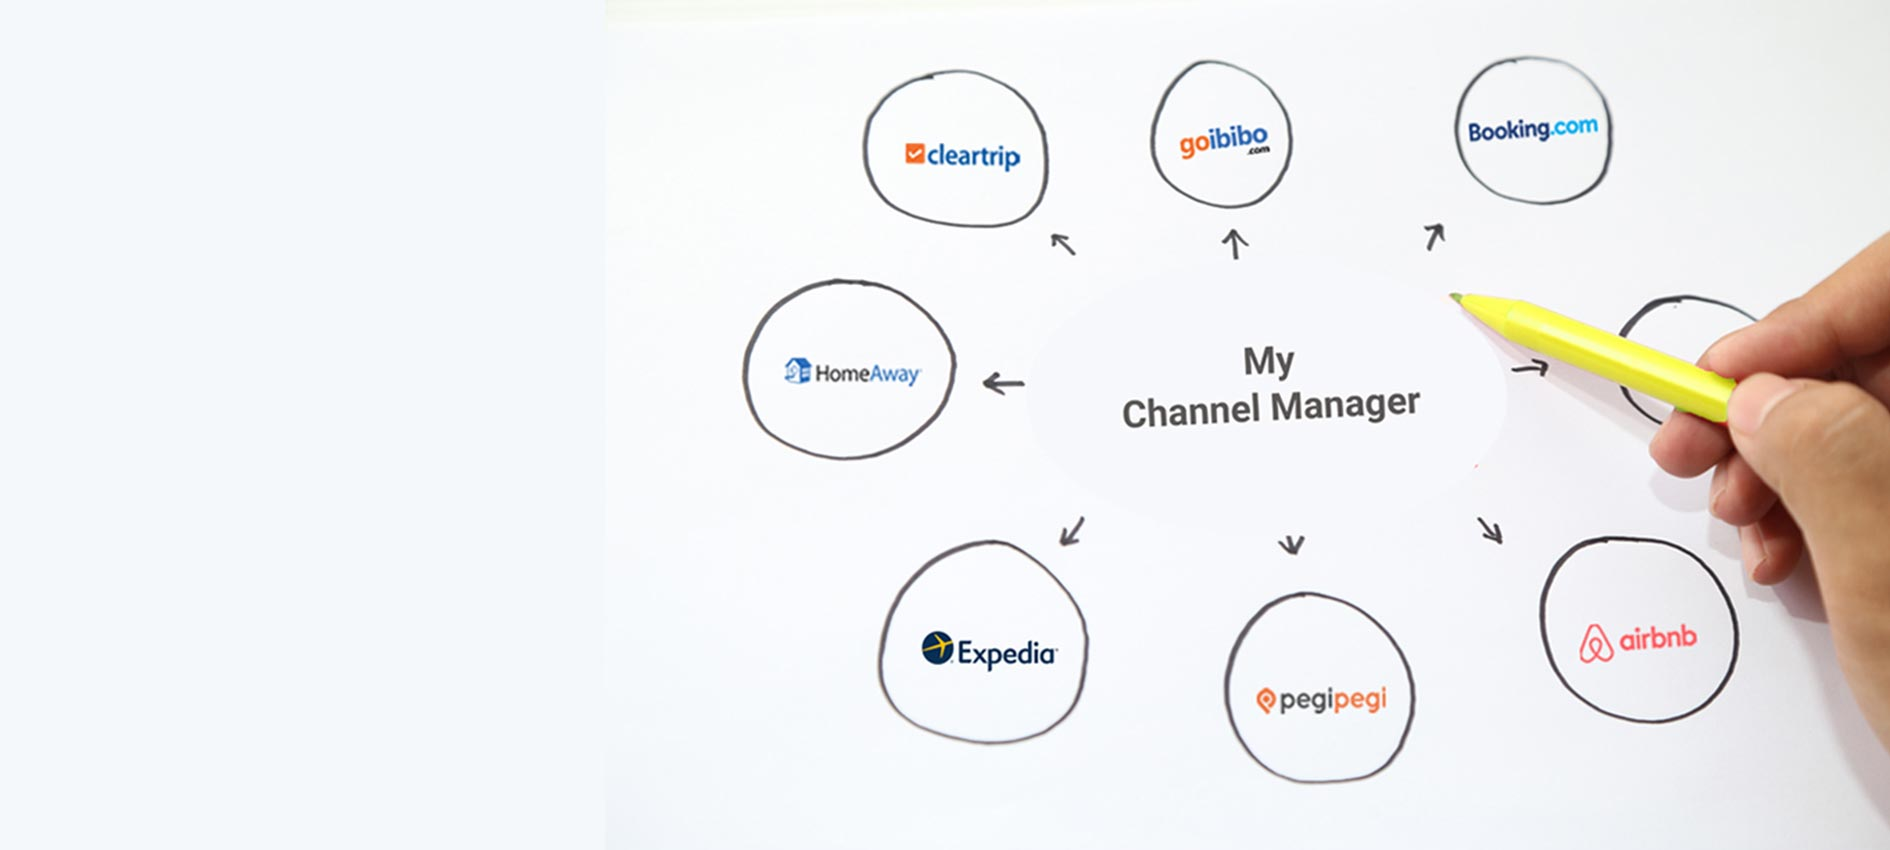 Own your own Channel Manager